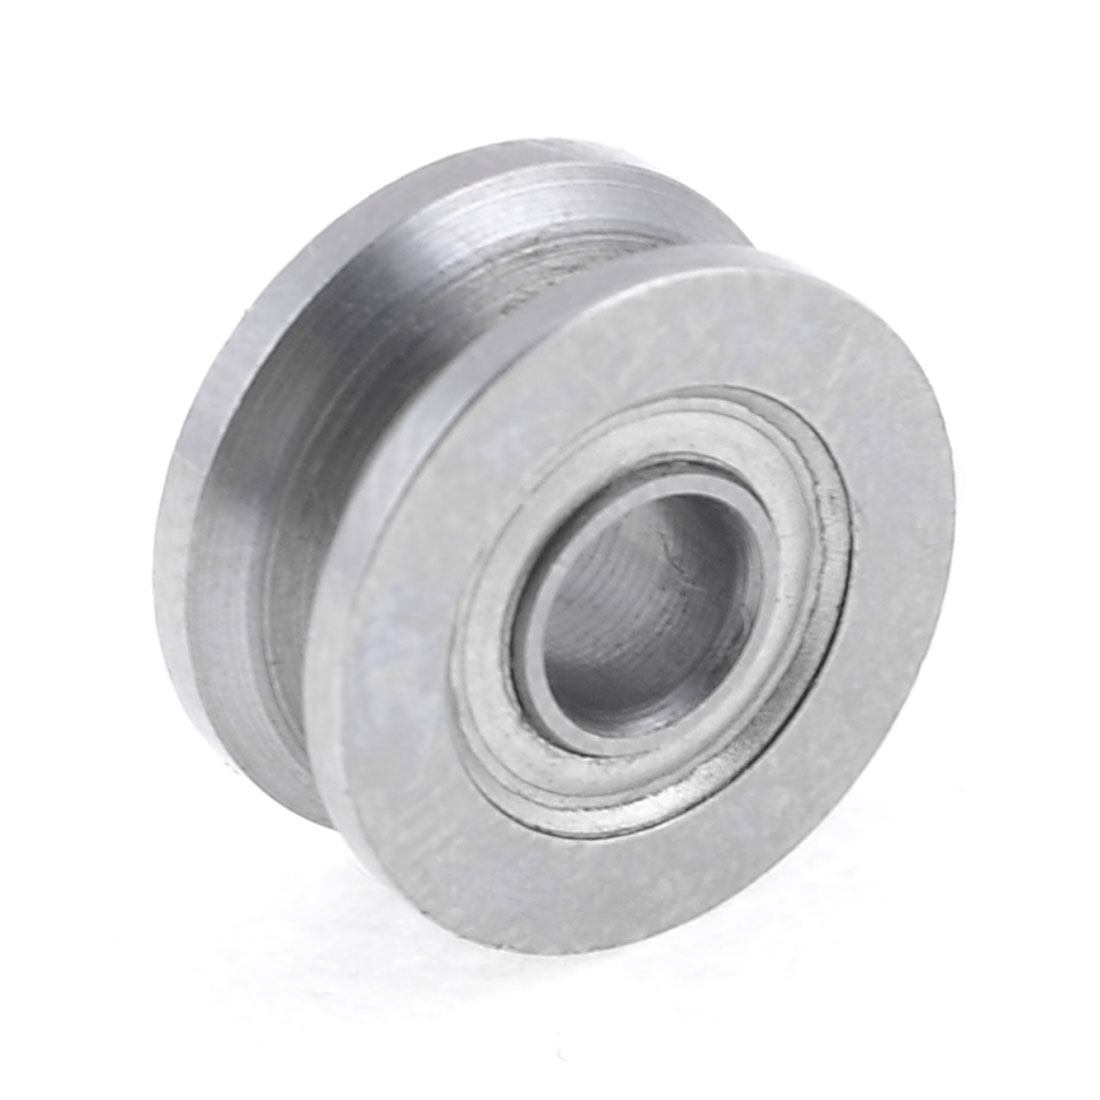 Replacement 13mm x 4mm x 6mm Carbon Steel Groove Sealed Ball Bearing Silver Tone